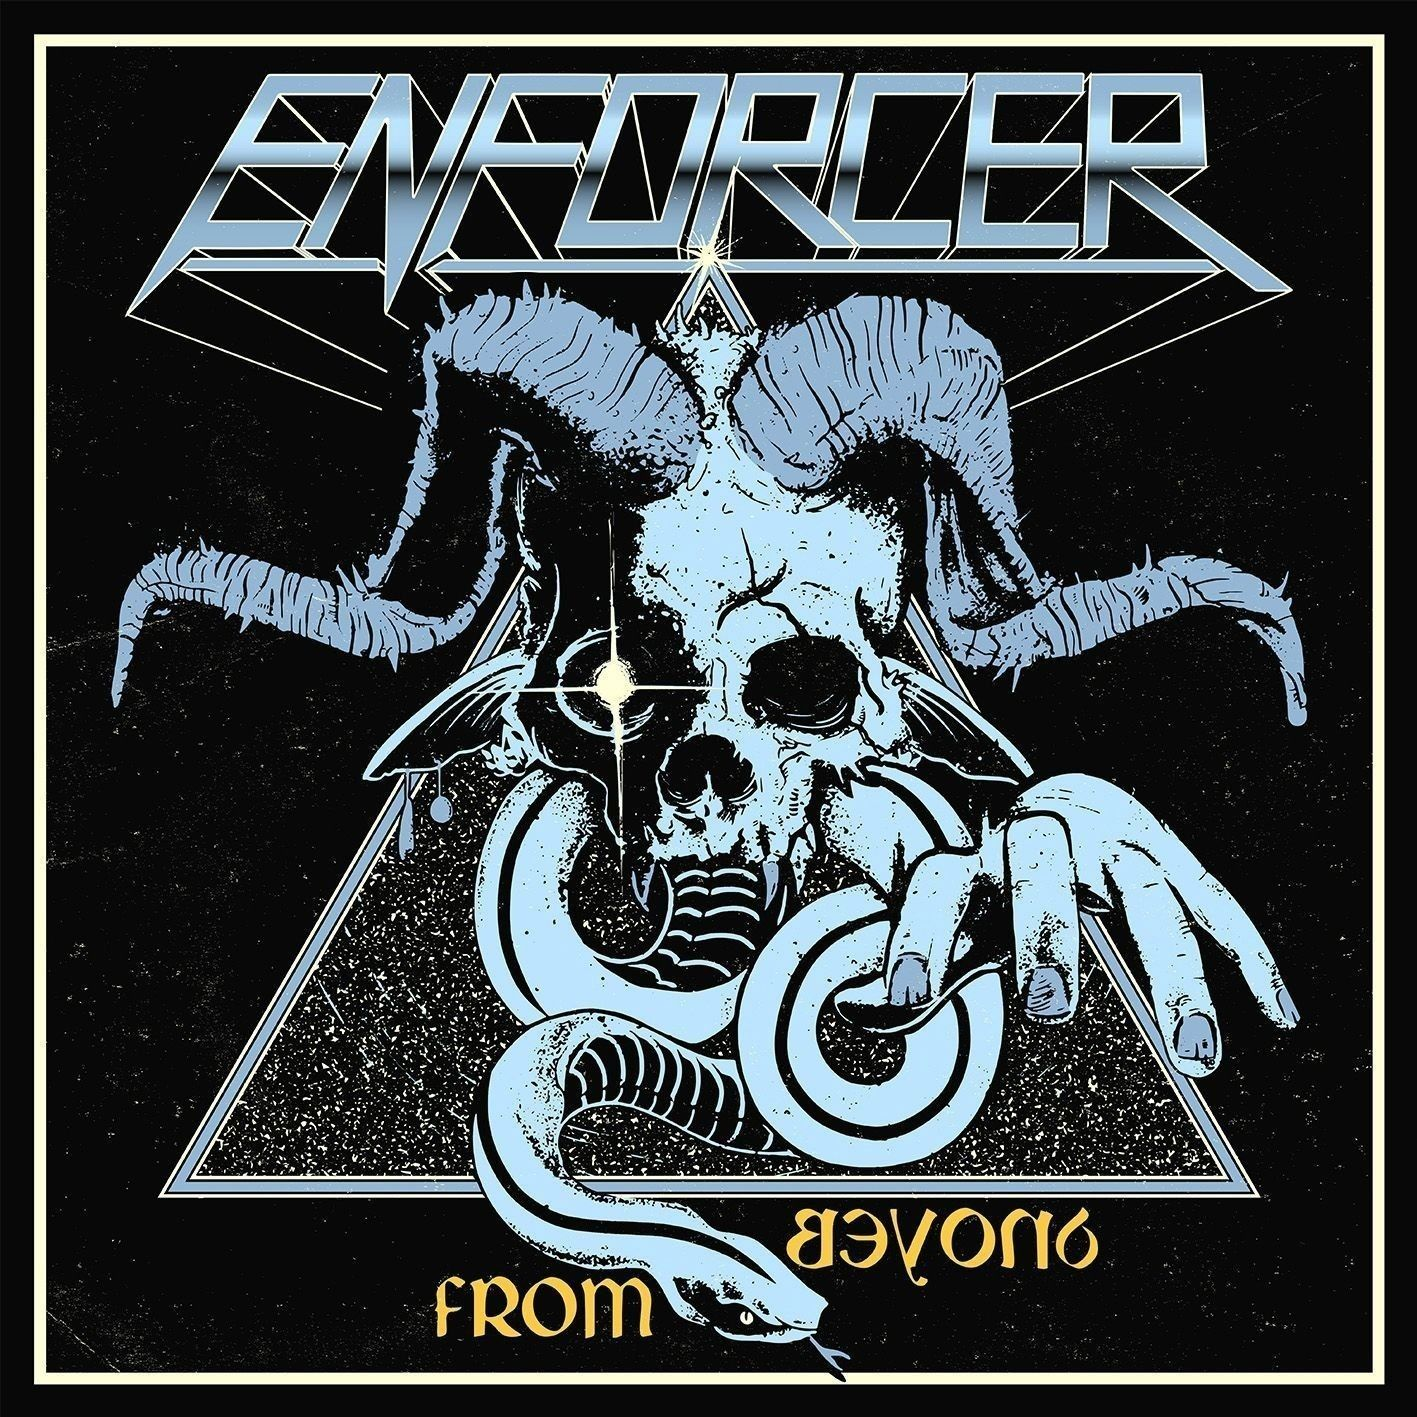 CD Digifile - Enforcer - From Beyond